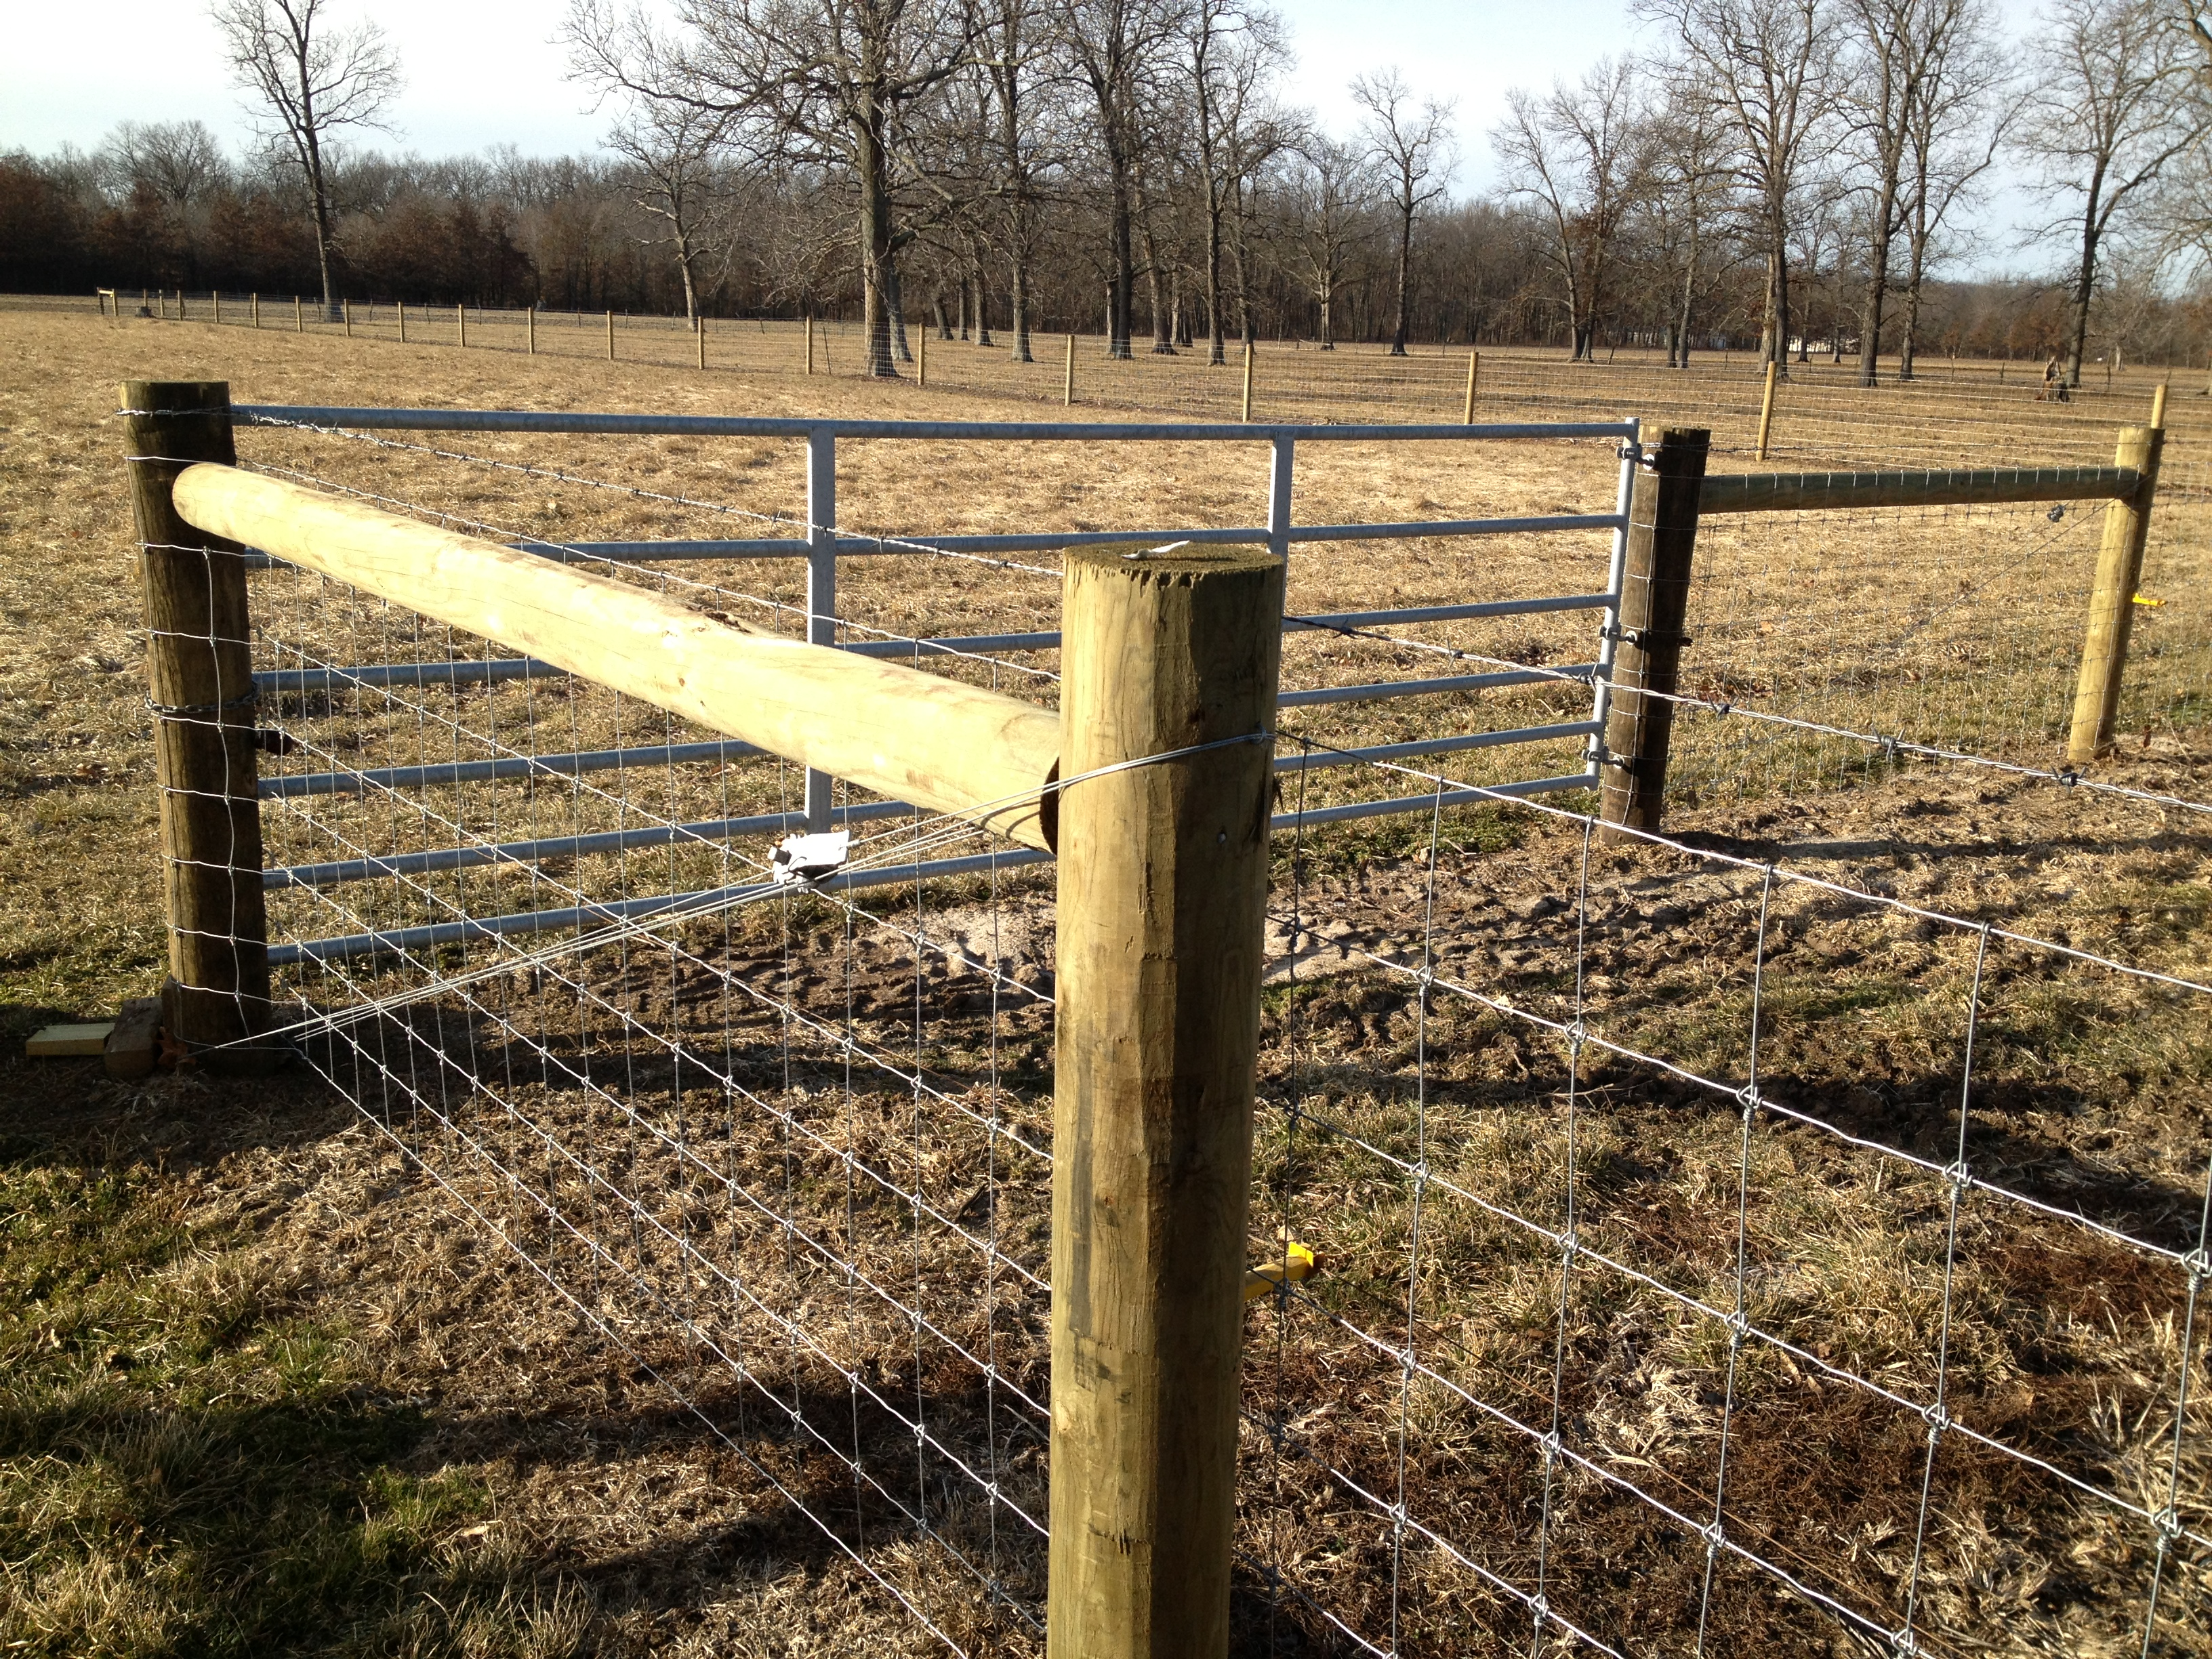 High Tensile Woven Wire - Kramer Fence Construction Inc.